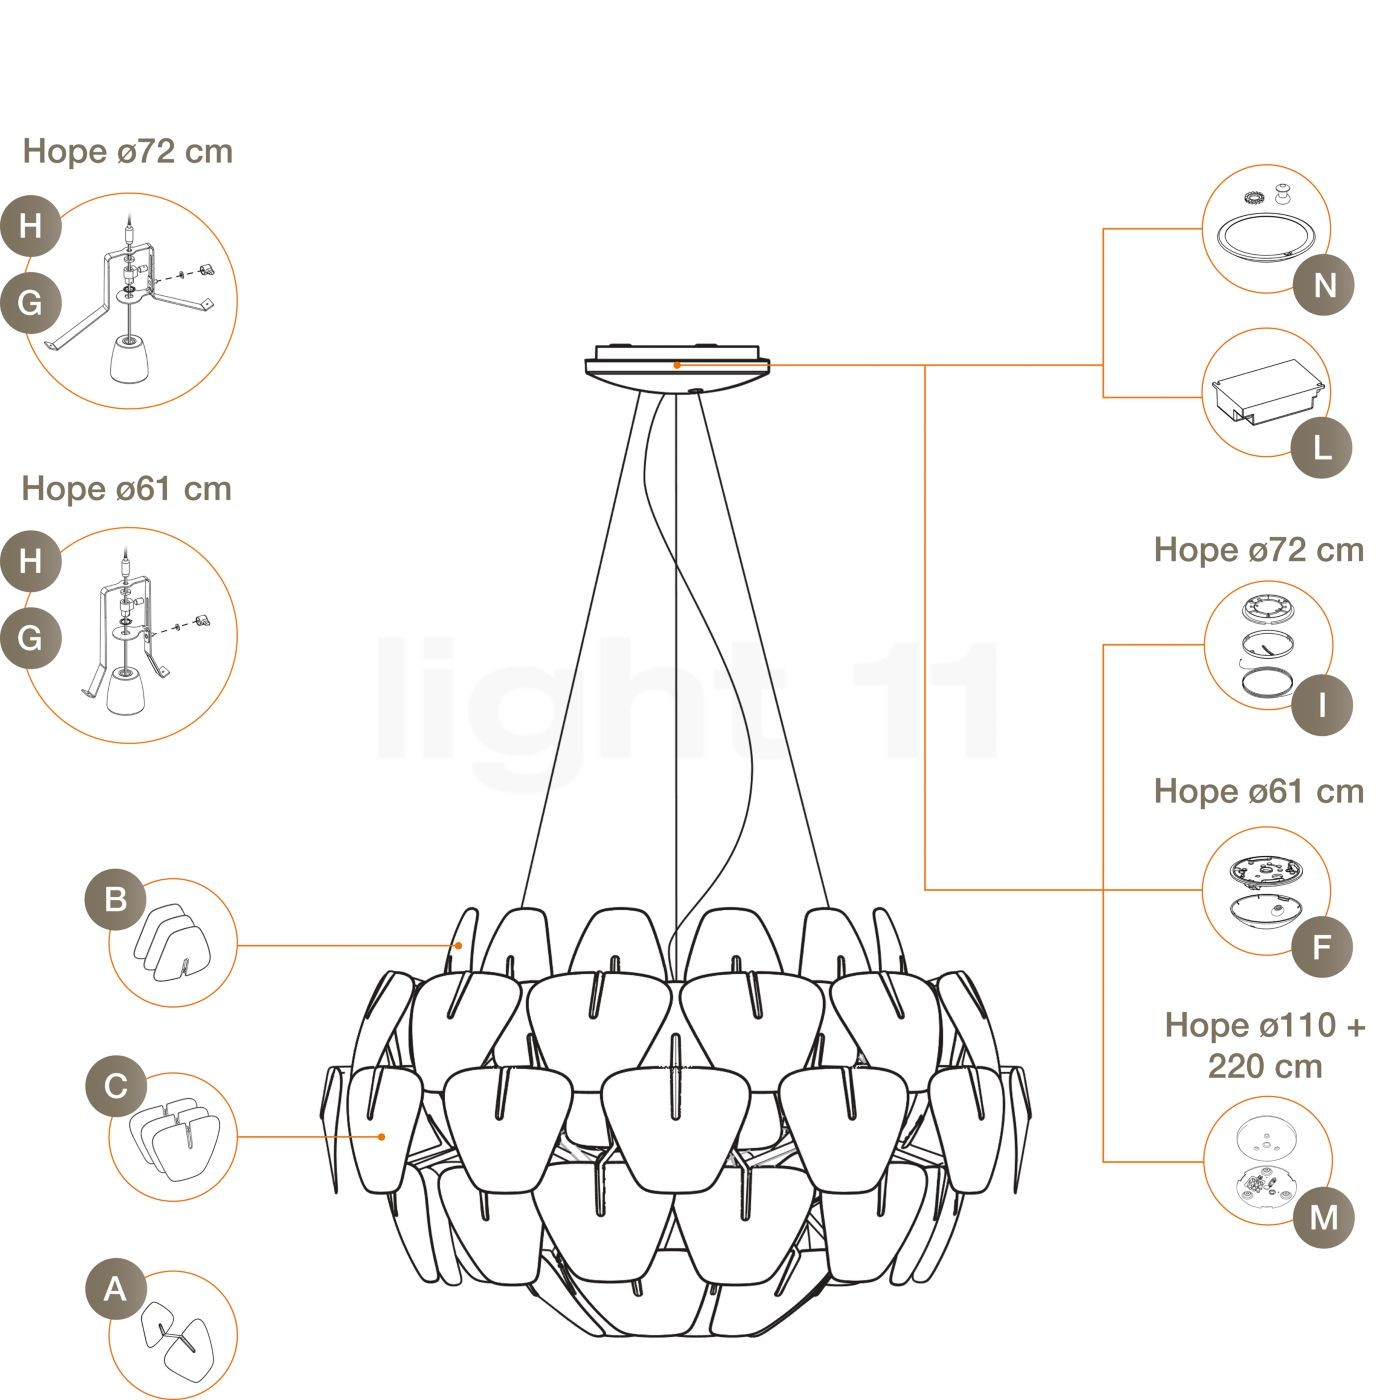 Floor Lamp Parts Diagram Buy Luceplan Spare Parts for Hope Pendant Light at Of Floor Lamp Parts Diagram